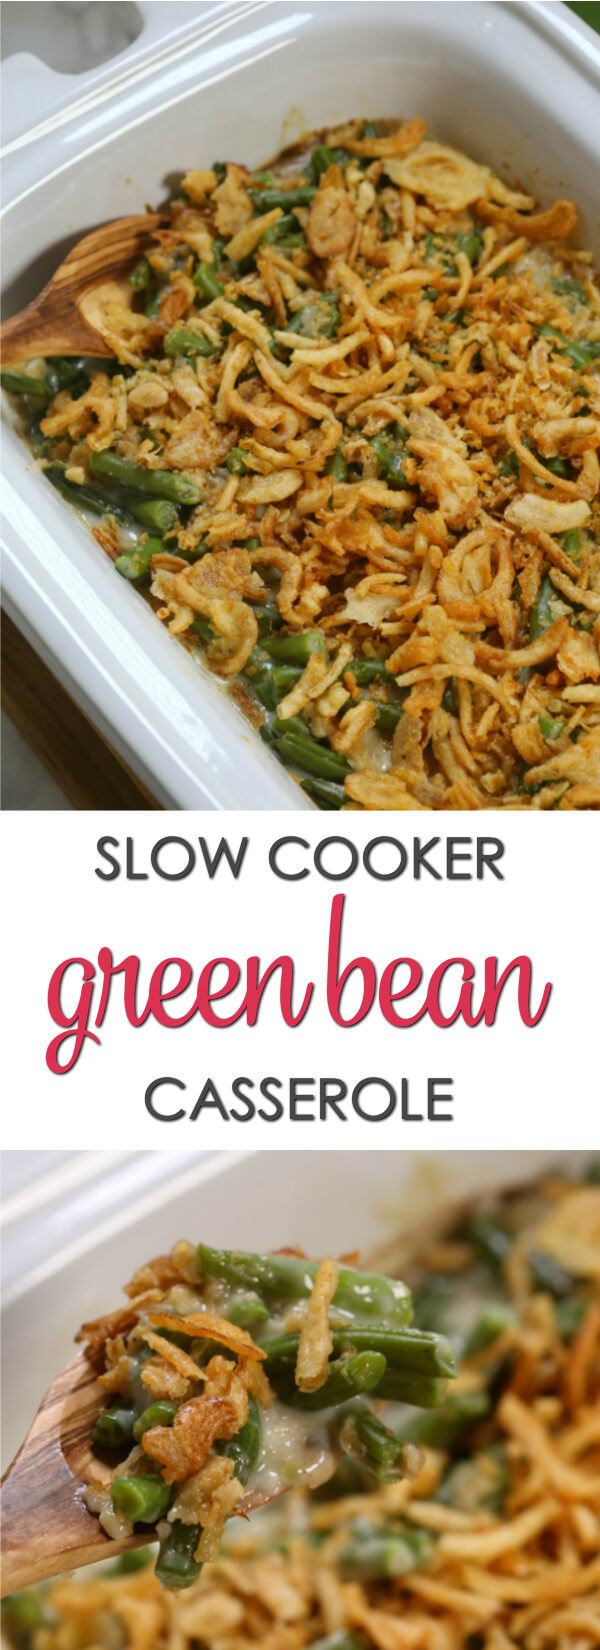 This Crockpot Green Bean Casserole is a time saving twist on a classic Thanksgiving recipe. It's easy to put together and doesn't take up precious oven space on the big day.  It's definitely one of the best slow cooker recipes of all time.